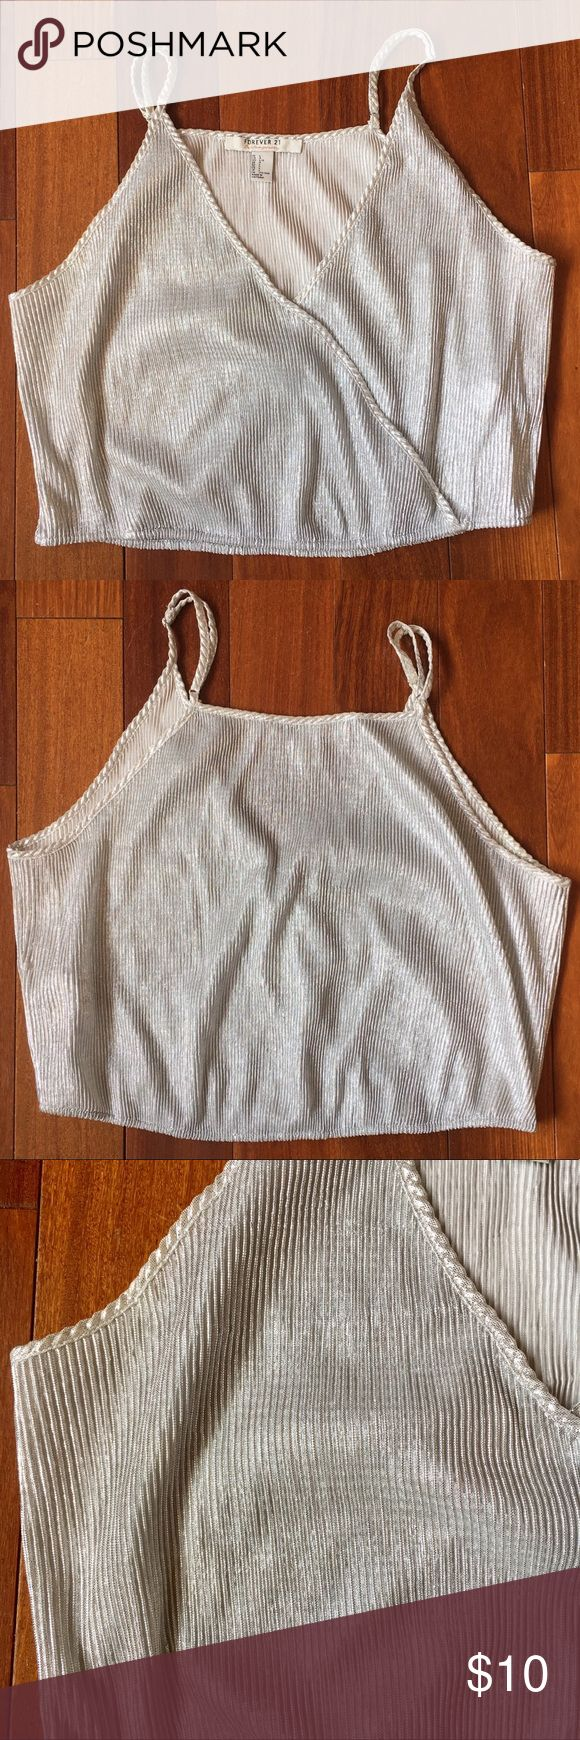 Silver cami Silver cami for a night out. Cropped and cinched at the waist. Adjustable straps. Worn once. Forever 21 Tops Camisoles